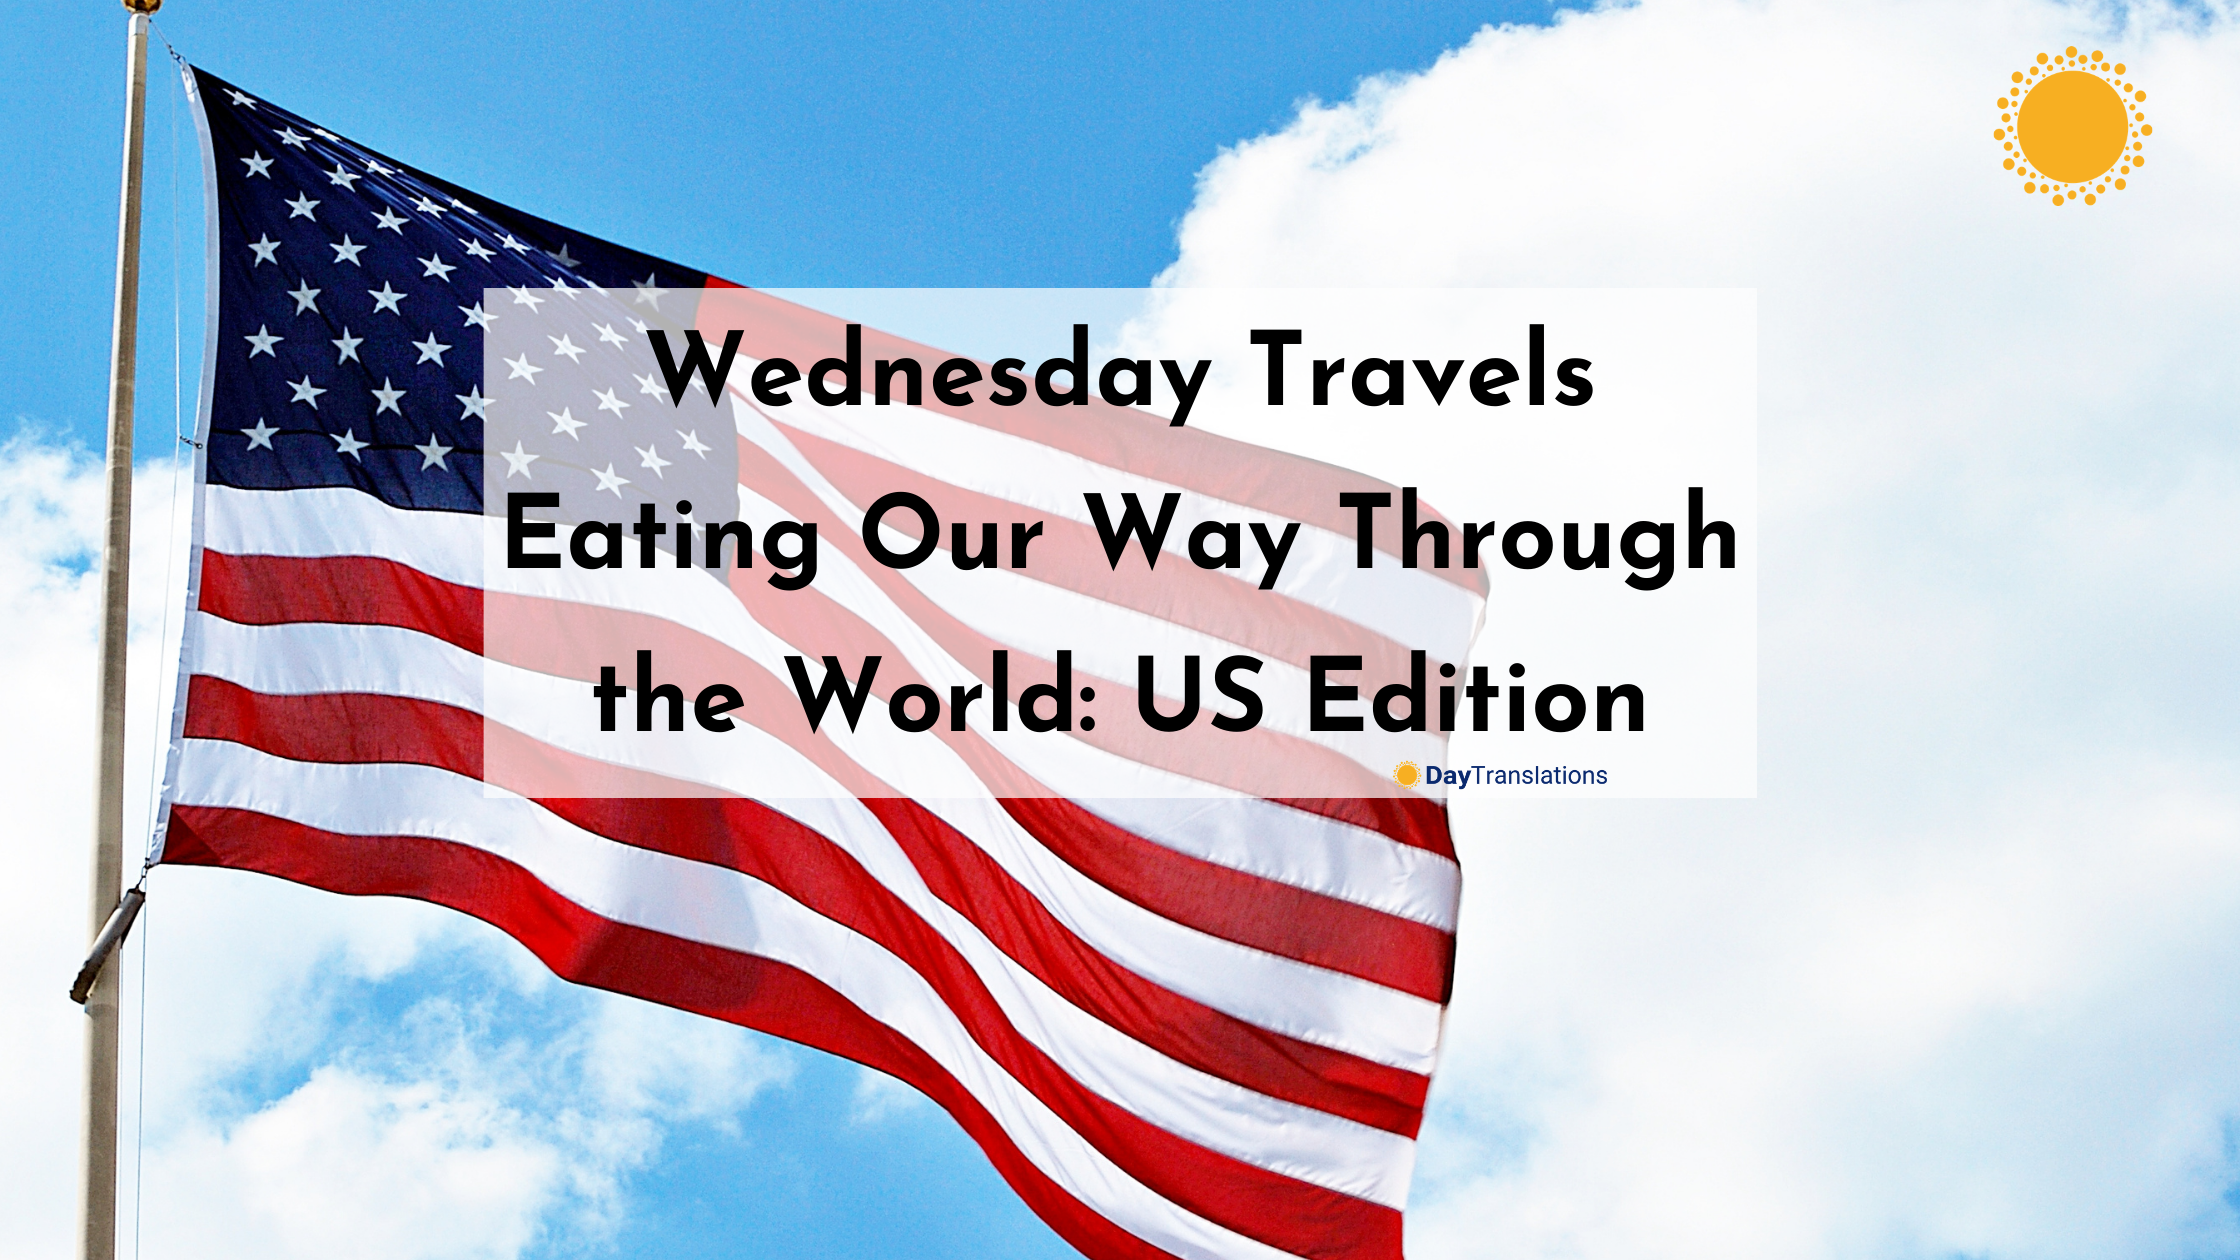 Wednesday Travel: Eating Our Way Through the World US Edition